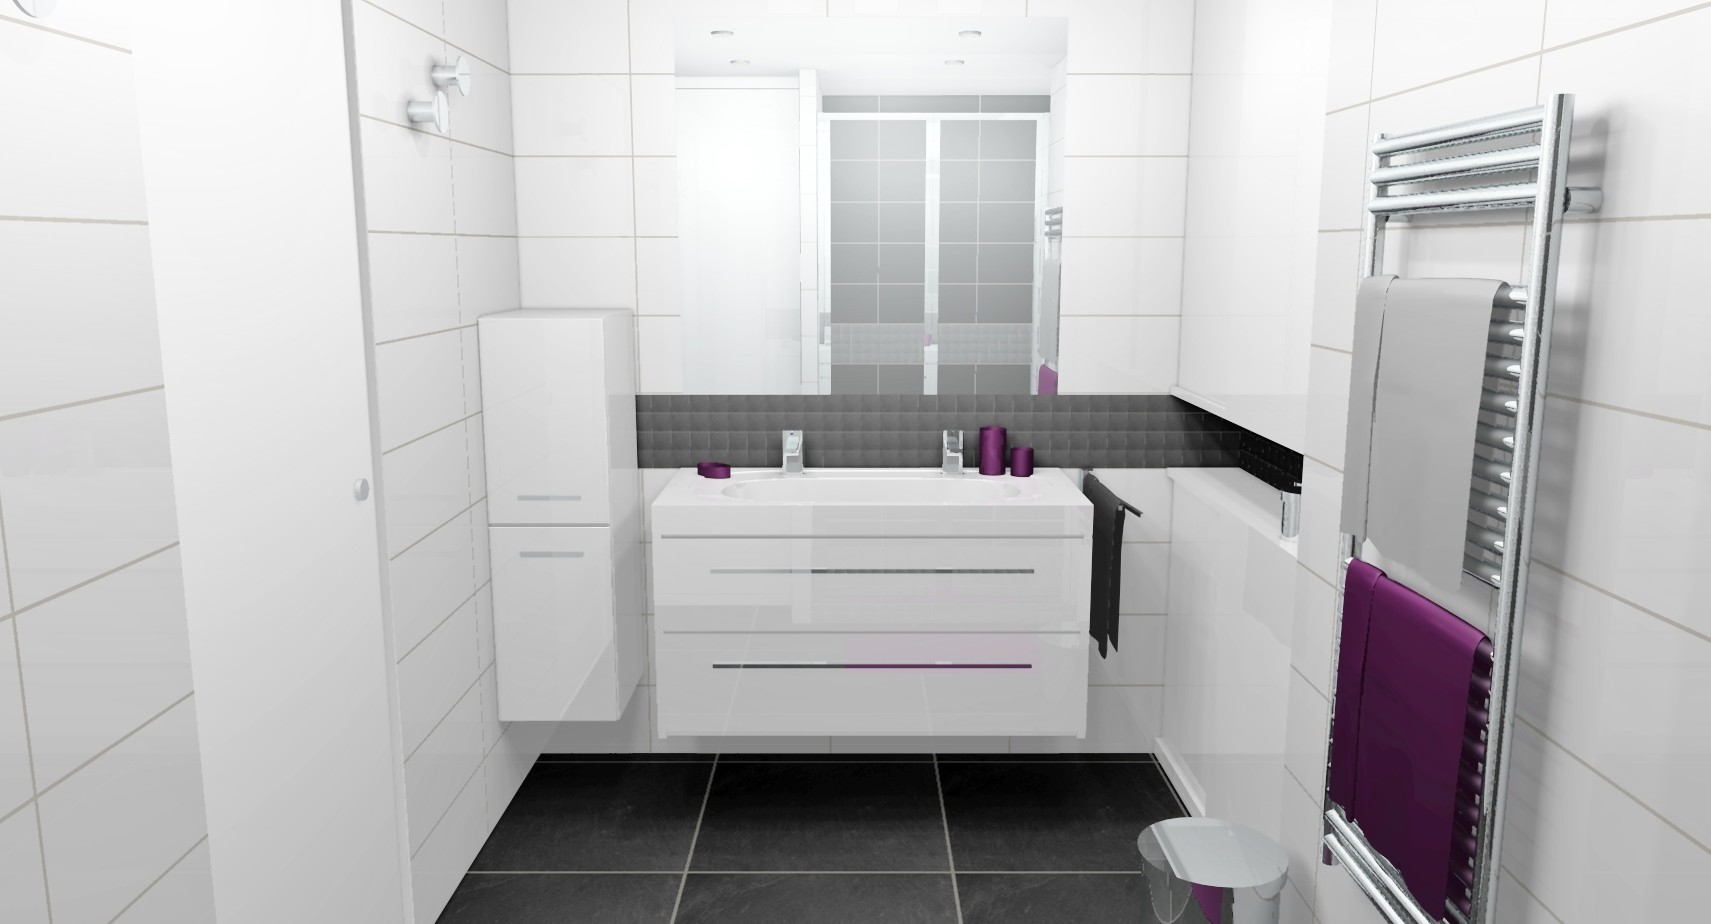 Amenagement salle de bain 7m2 fashion designs for Salle de bain 7m2 en longueur